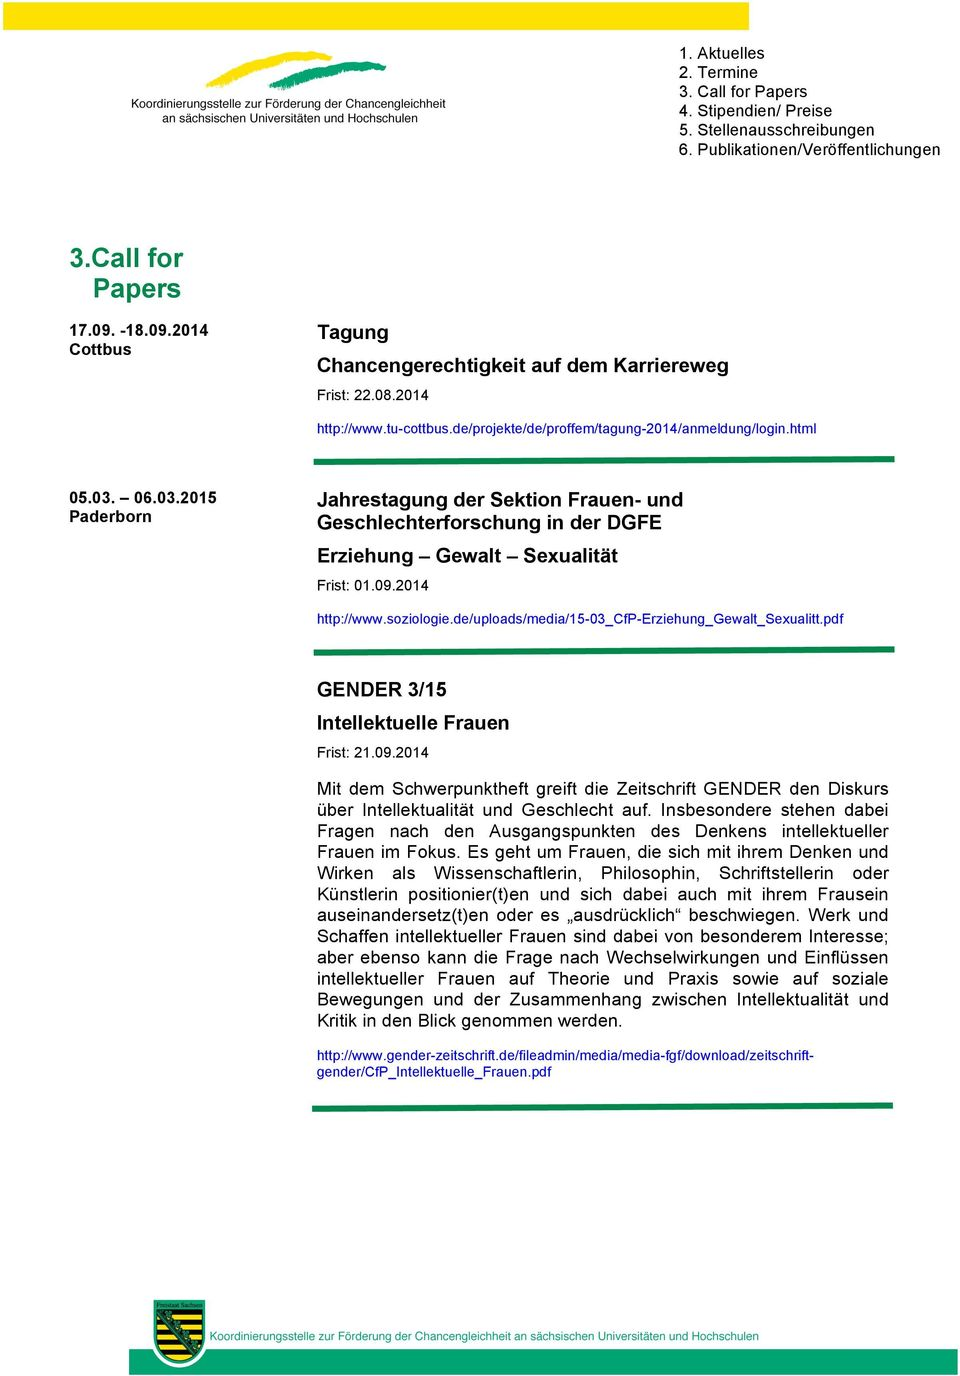 de/uploads/media/15-03_cfp-erziehung_gewalt_sexualitt.pdf GENDER 3/15 Intellektuelle Frauen Frist: 21.09.